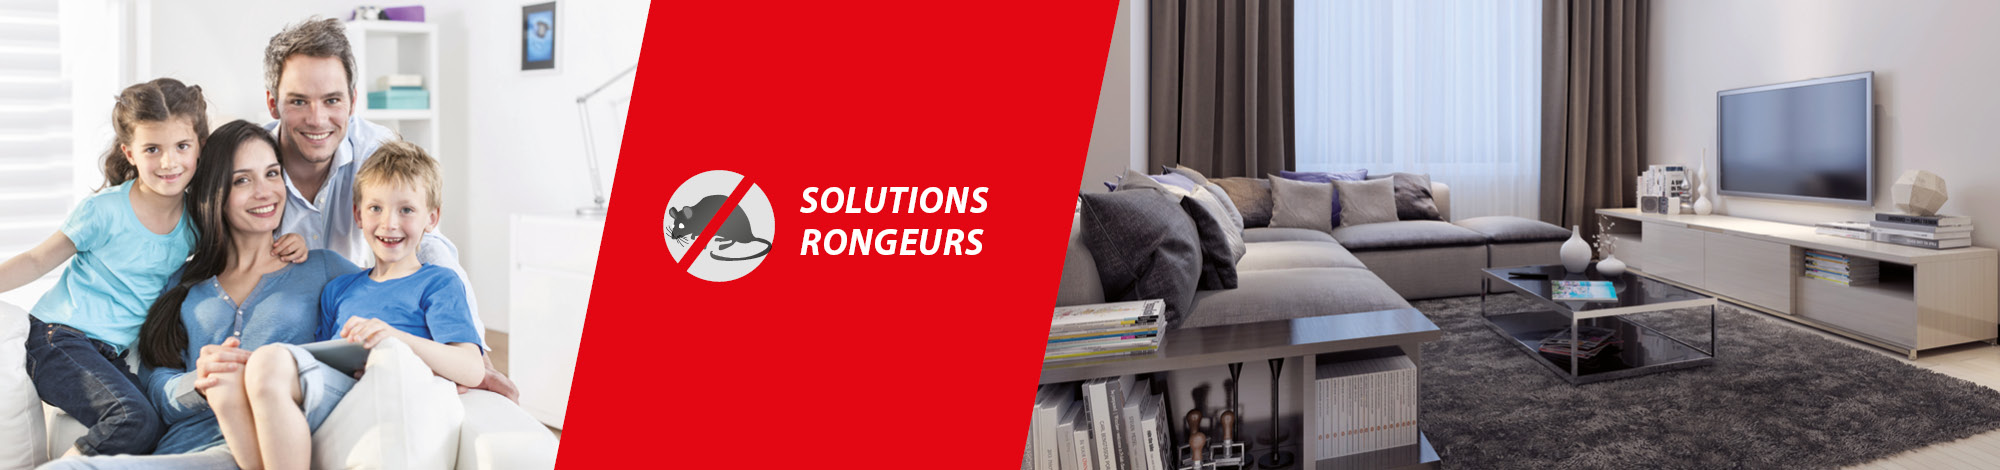 solutions rongeurs